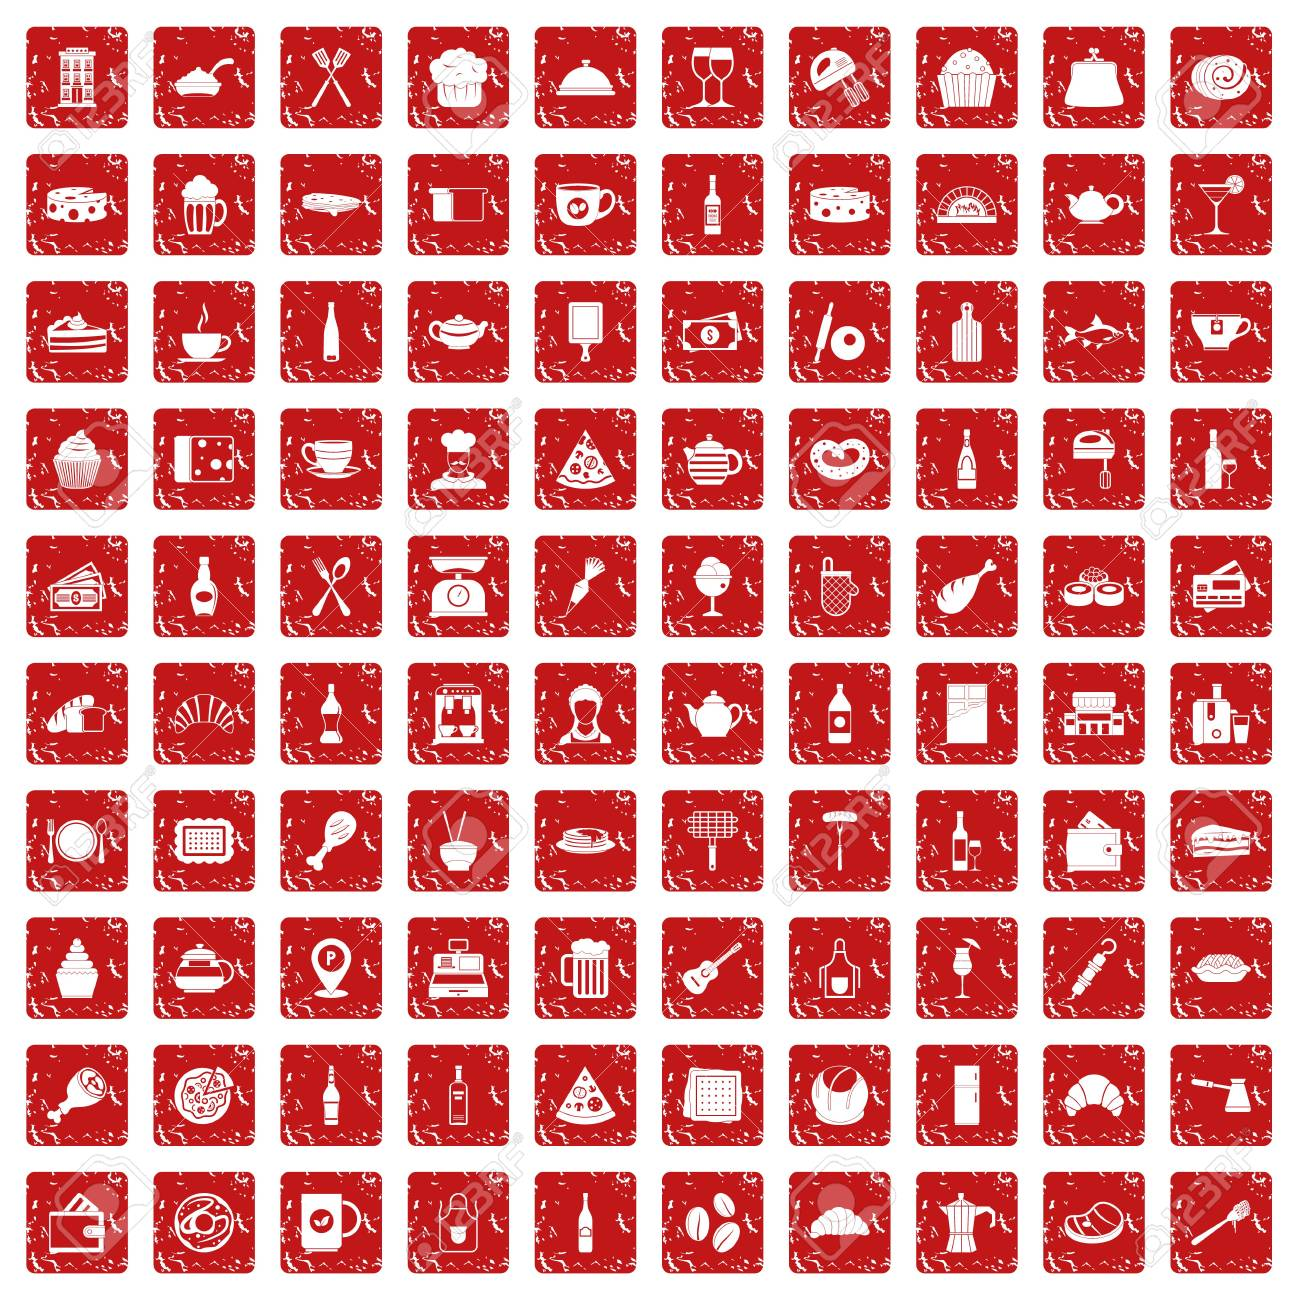 100 Restaurant Icons Set In Grunge Style Red Color Isolated On Royalty Free Cliparts Vectors And Stock Illustration Image 90652558